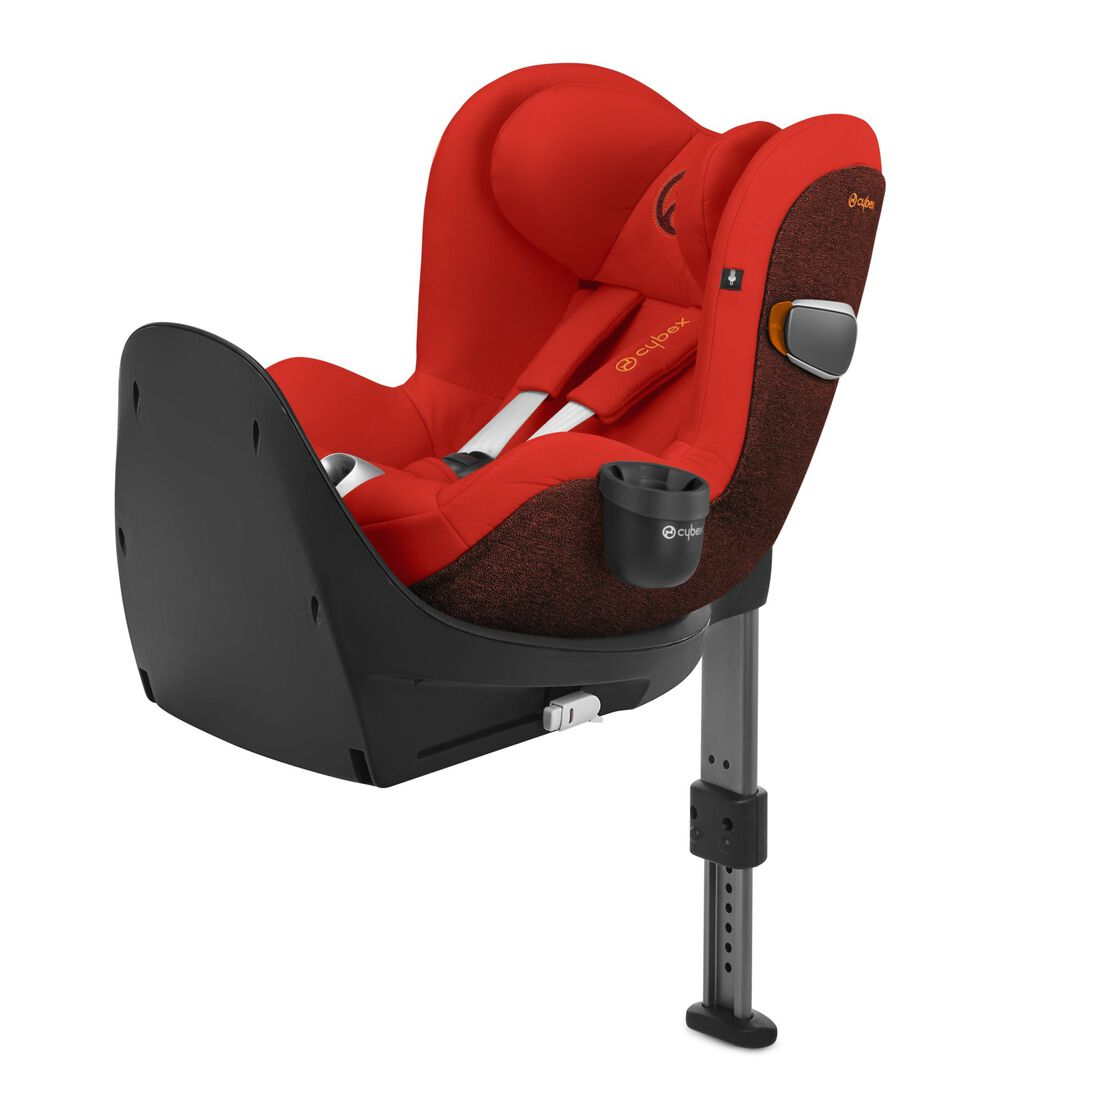 CYBEX Cup Holder Car Seats - Black in Black large